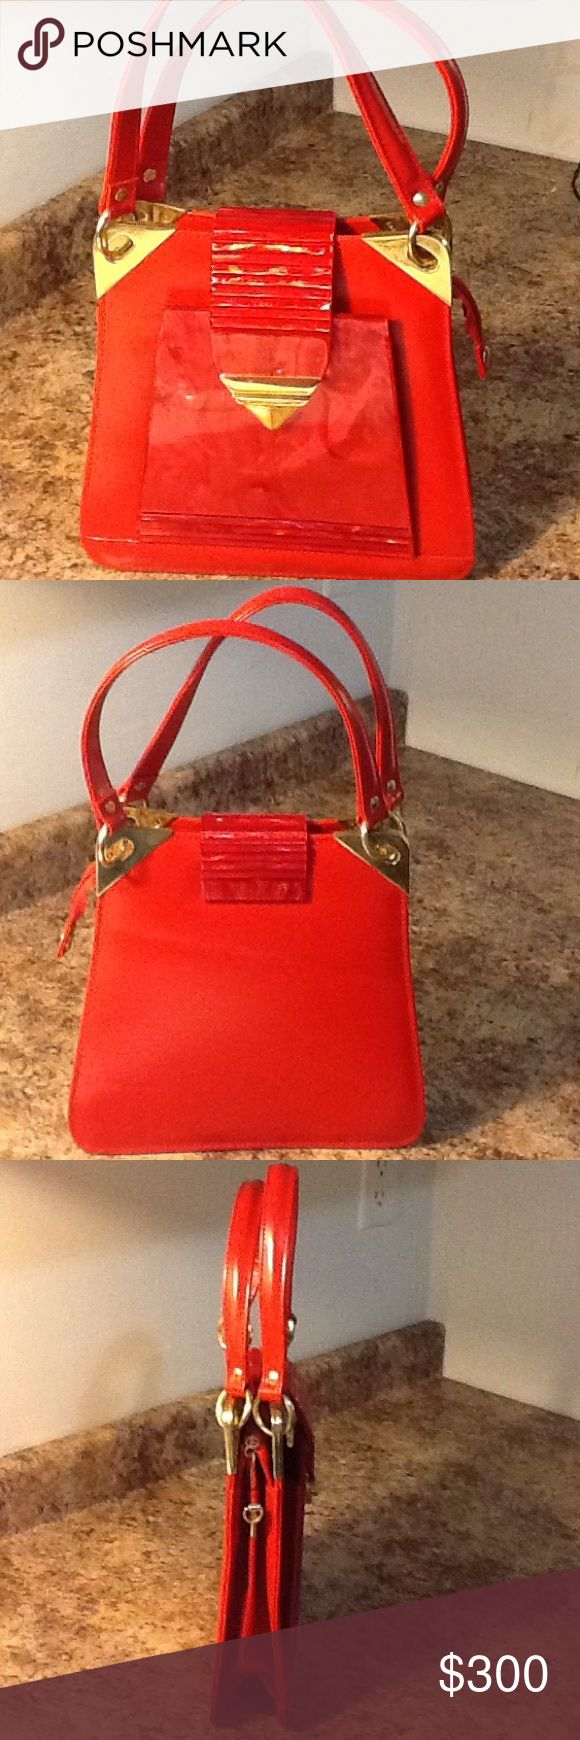 RARE! Guang tong gold red purse. NWOT Never used, cute bag, authentic leather bag C Matches most outfit, from plain to prints; from formal to evenings Guang Tong Bags Satchels